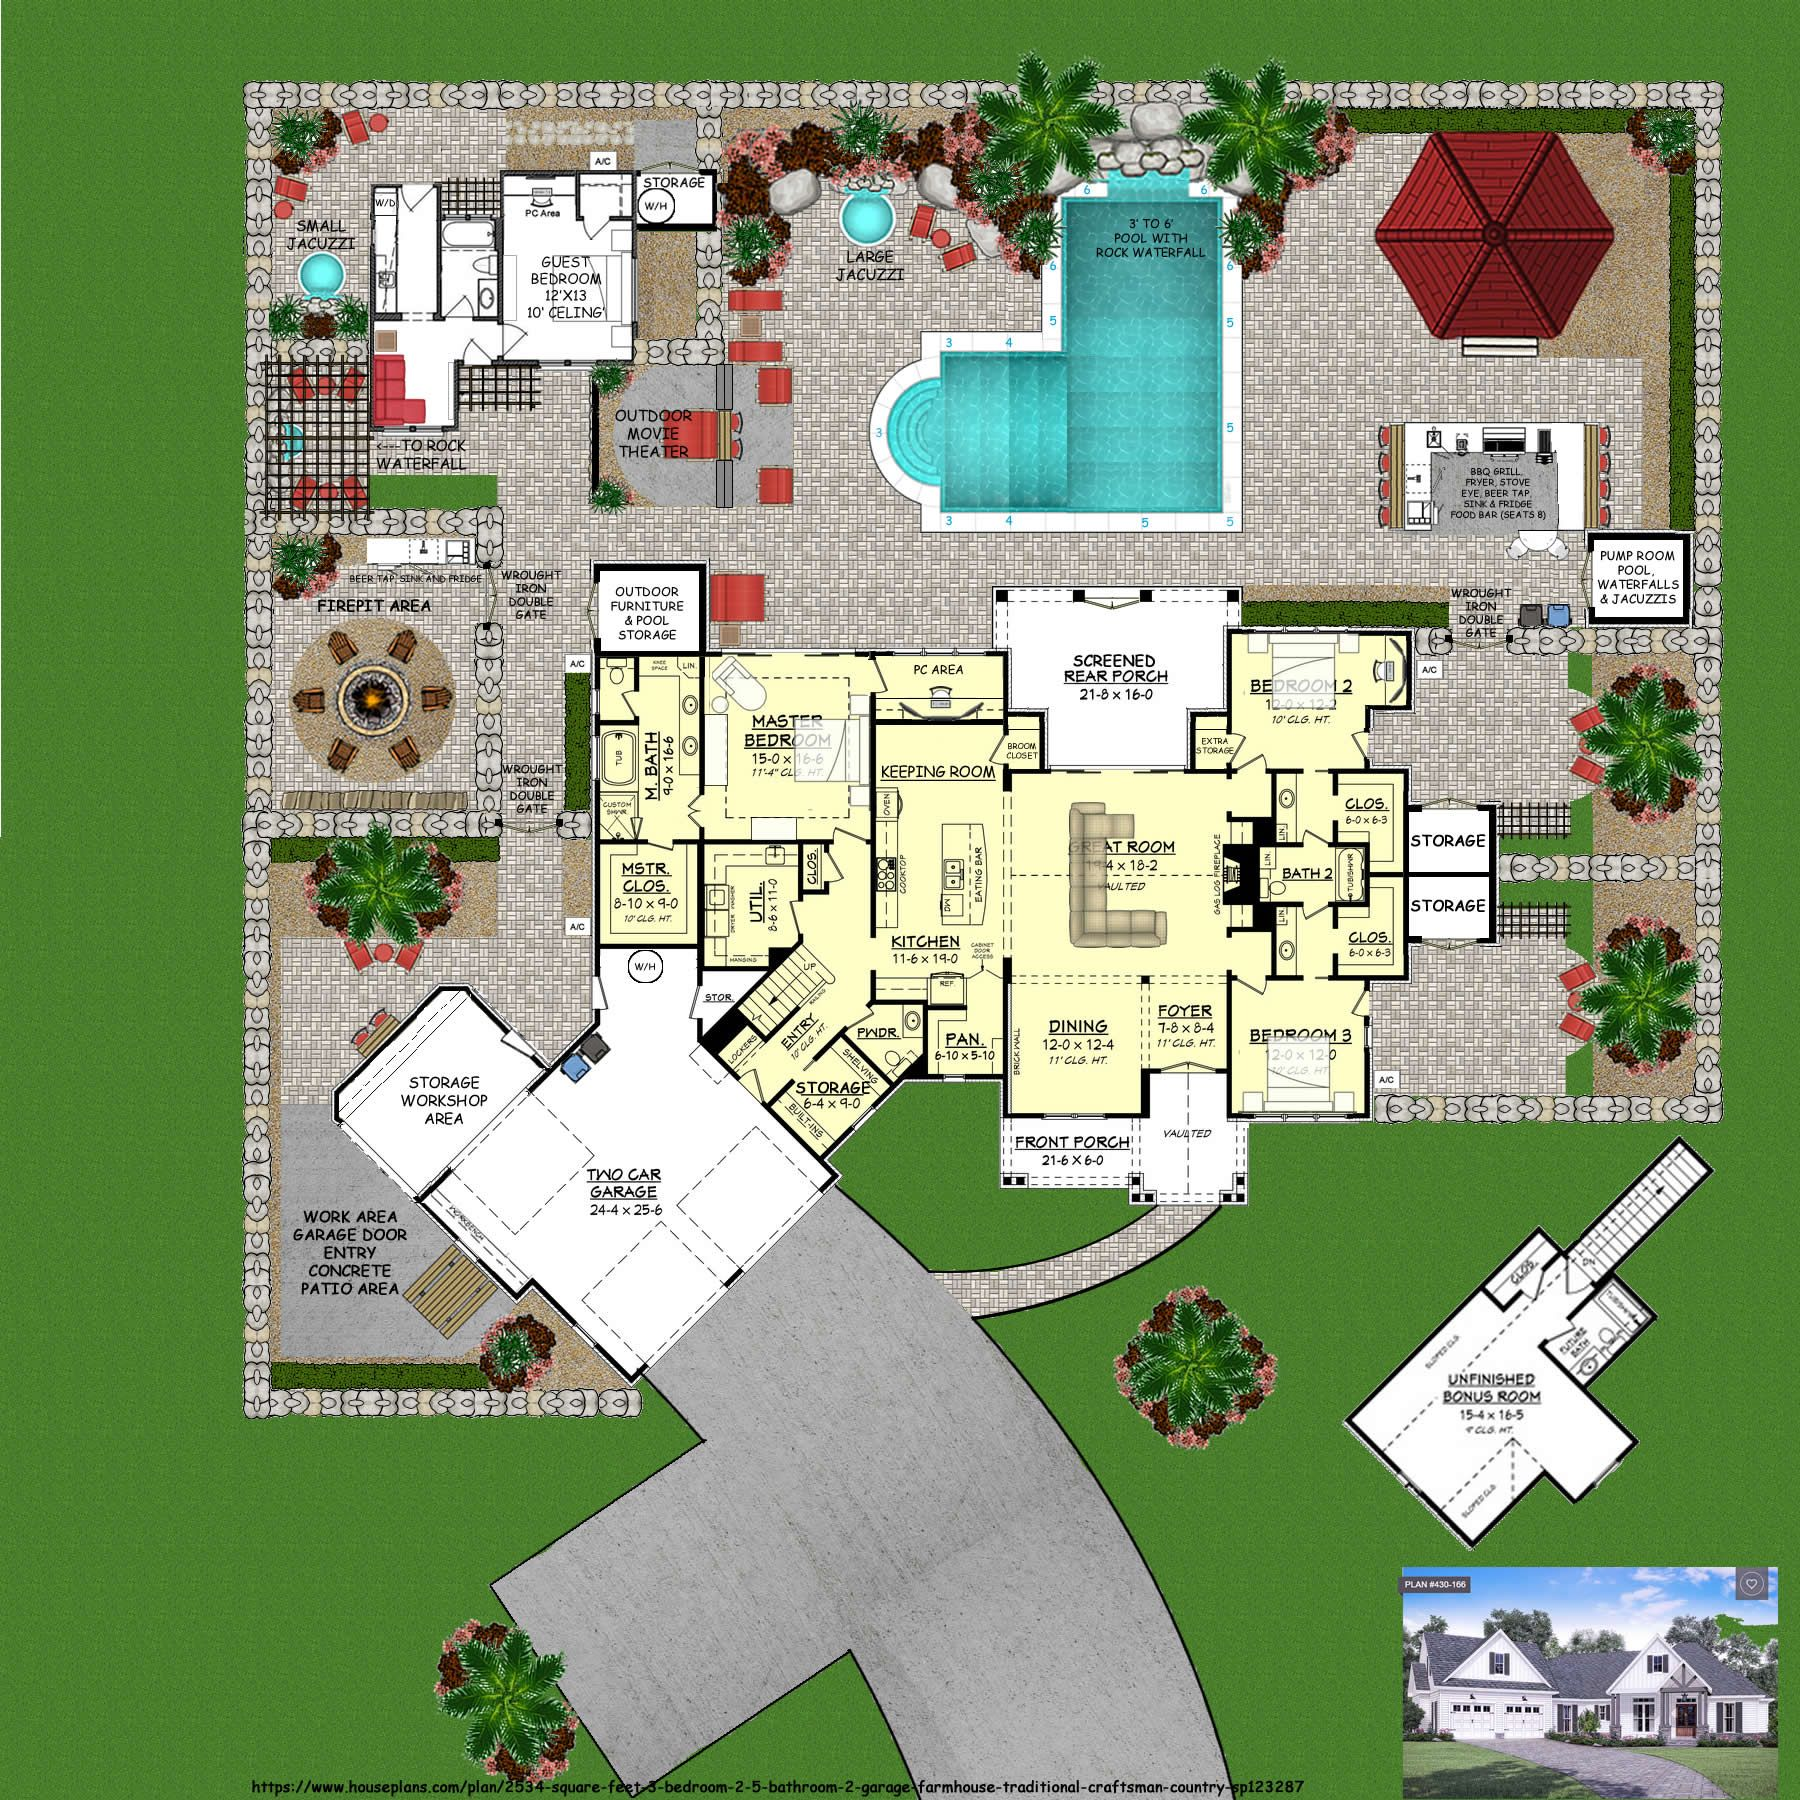 Heavily Edited The Original Plan Can Be Found Here Https Www Houseplans Com Plan 2534 Squar Sims 4 House Design Dream House Plans Small House Design Plans